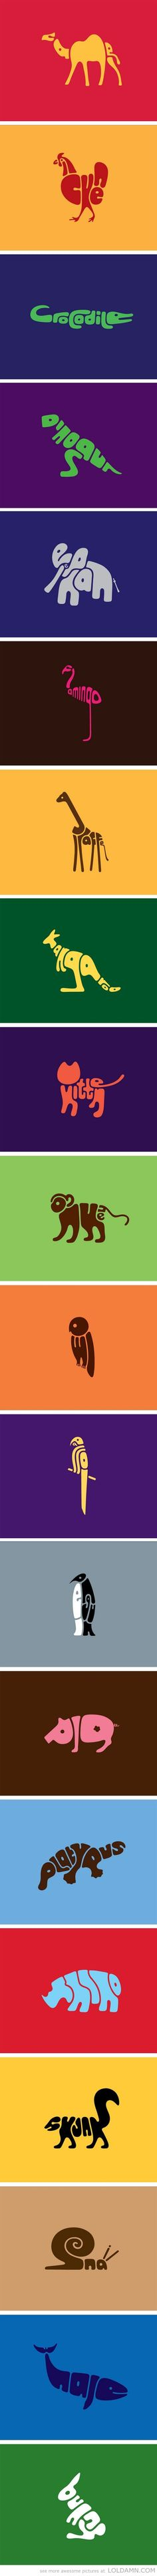 Word Animals- Design